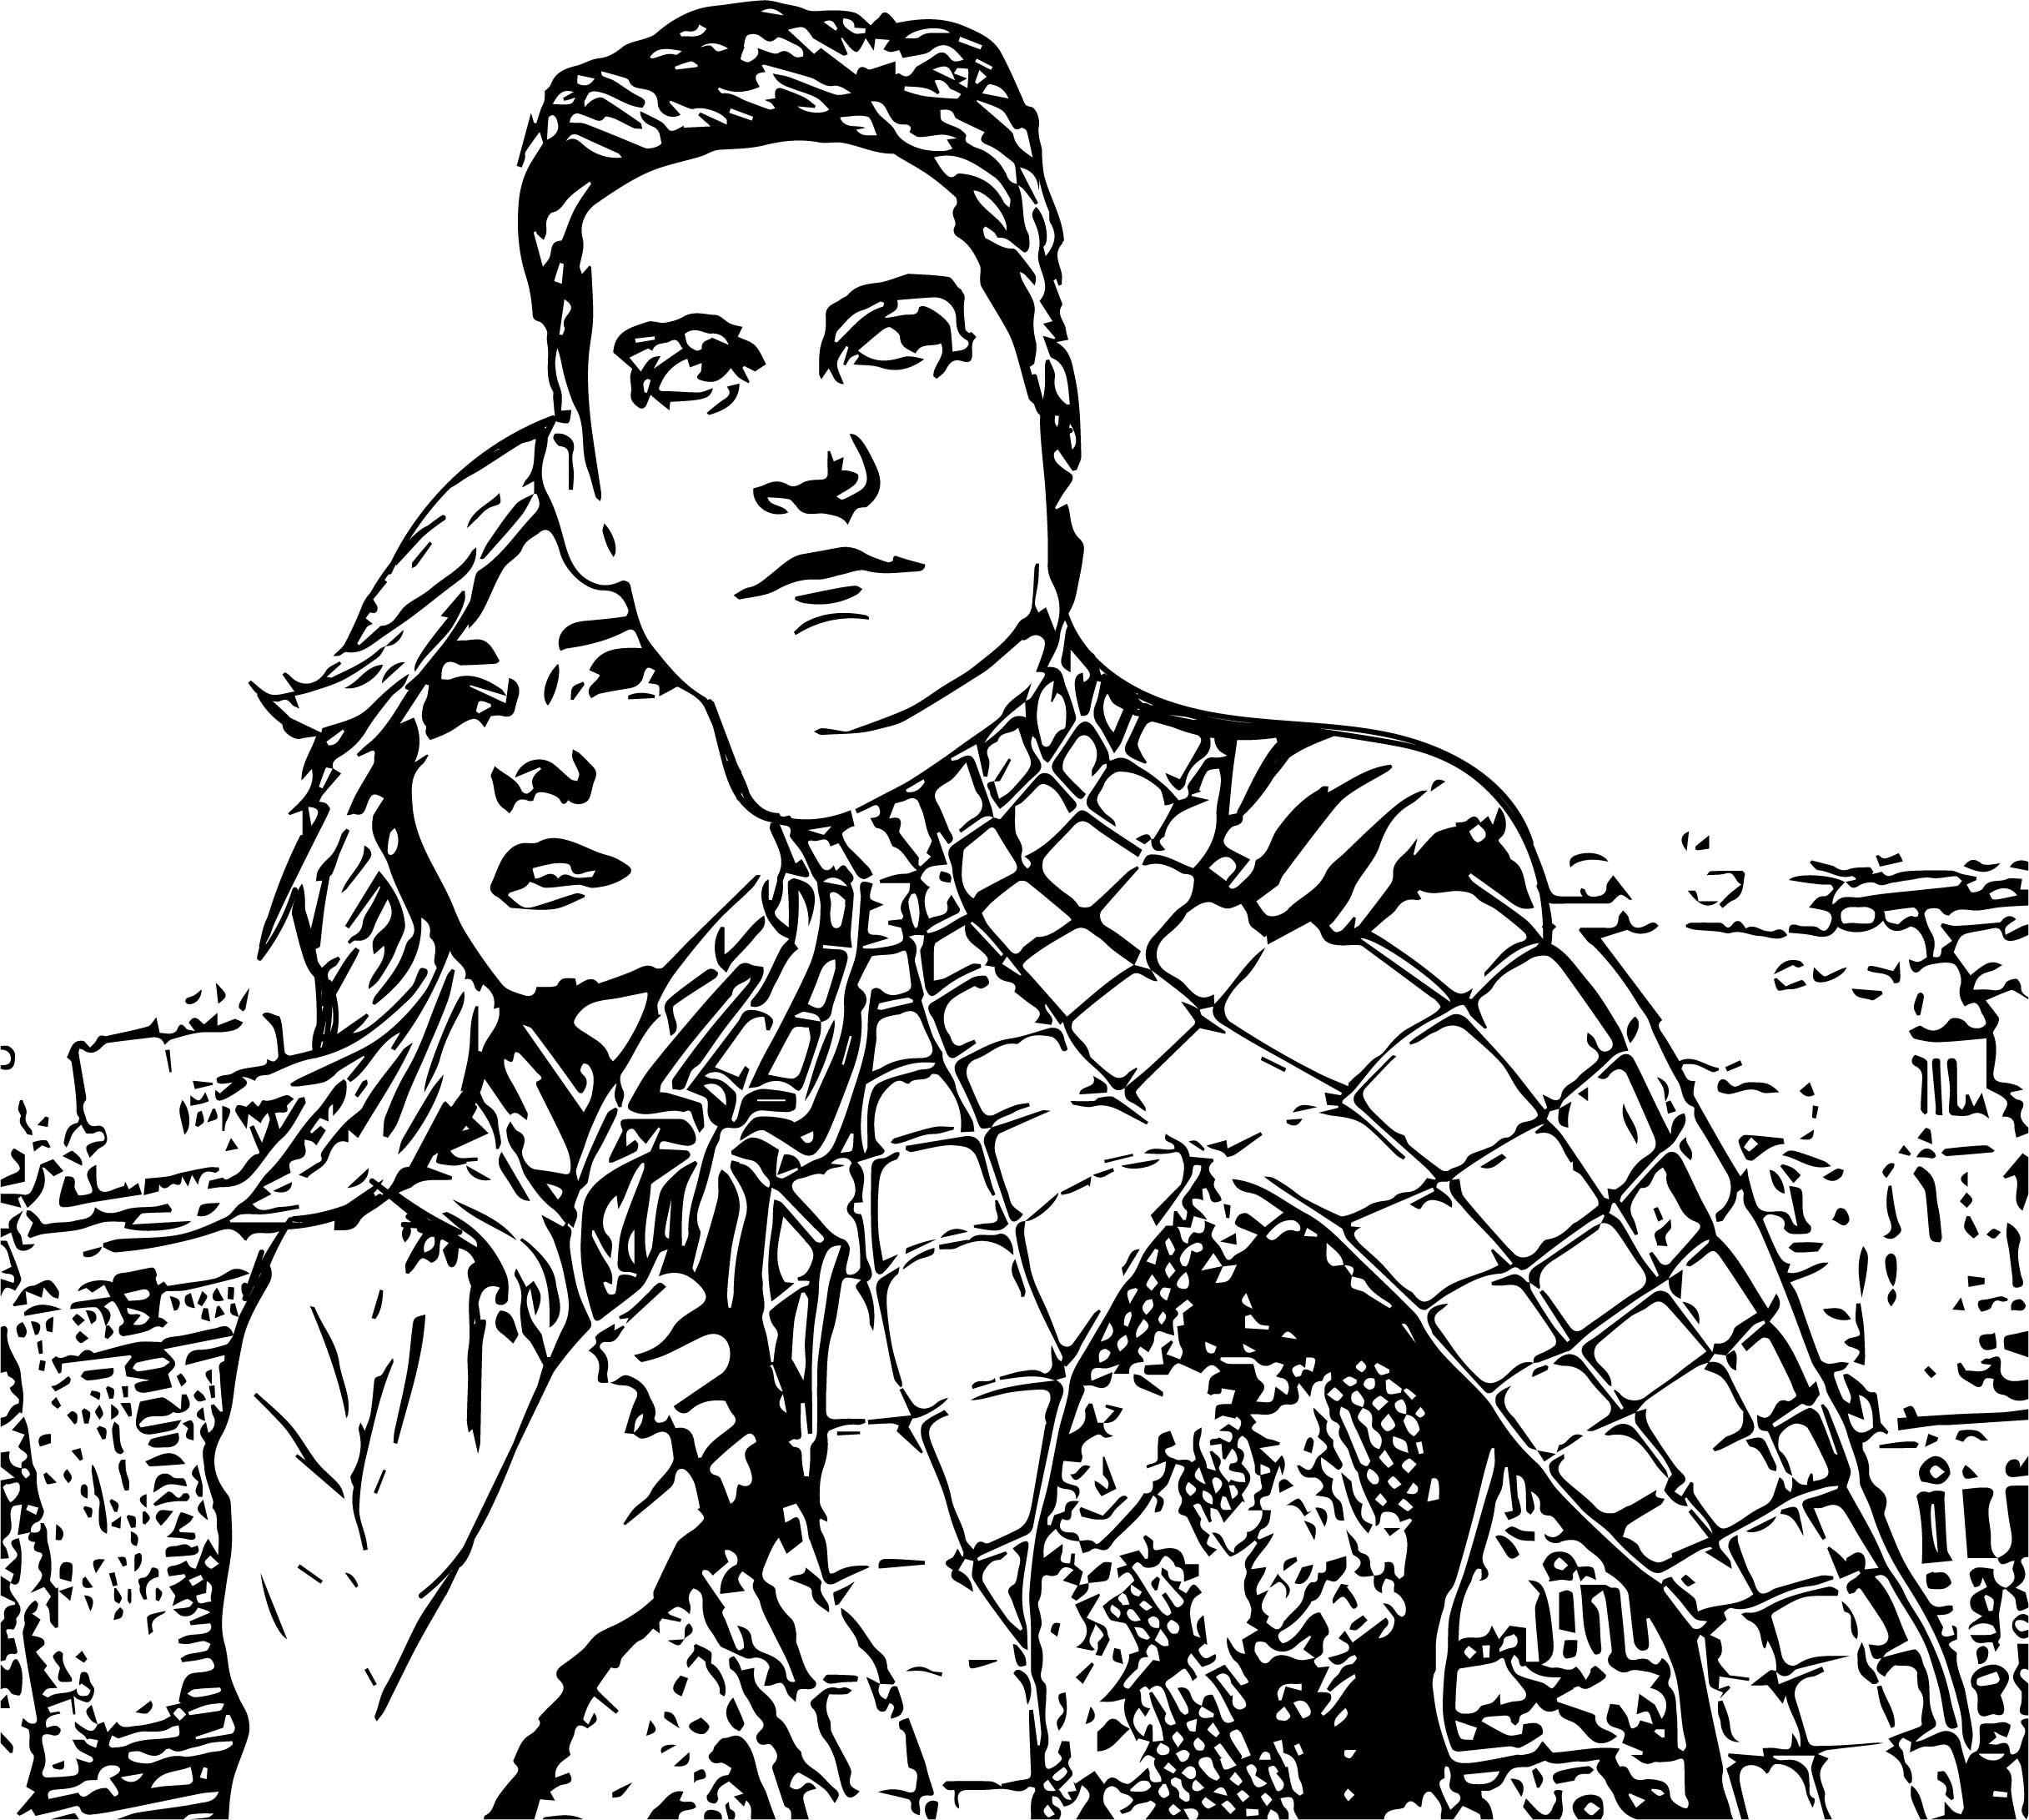 Spider man in movie coloring page for Coloring pages man